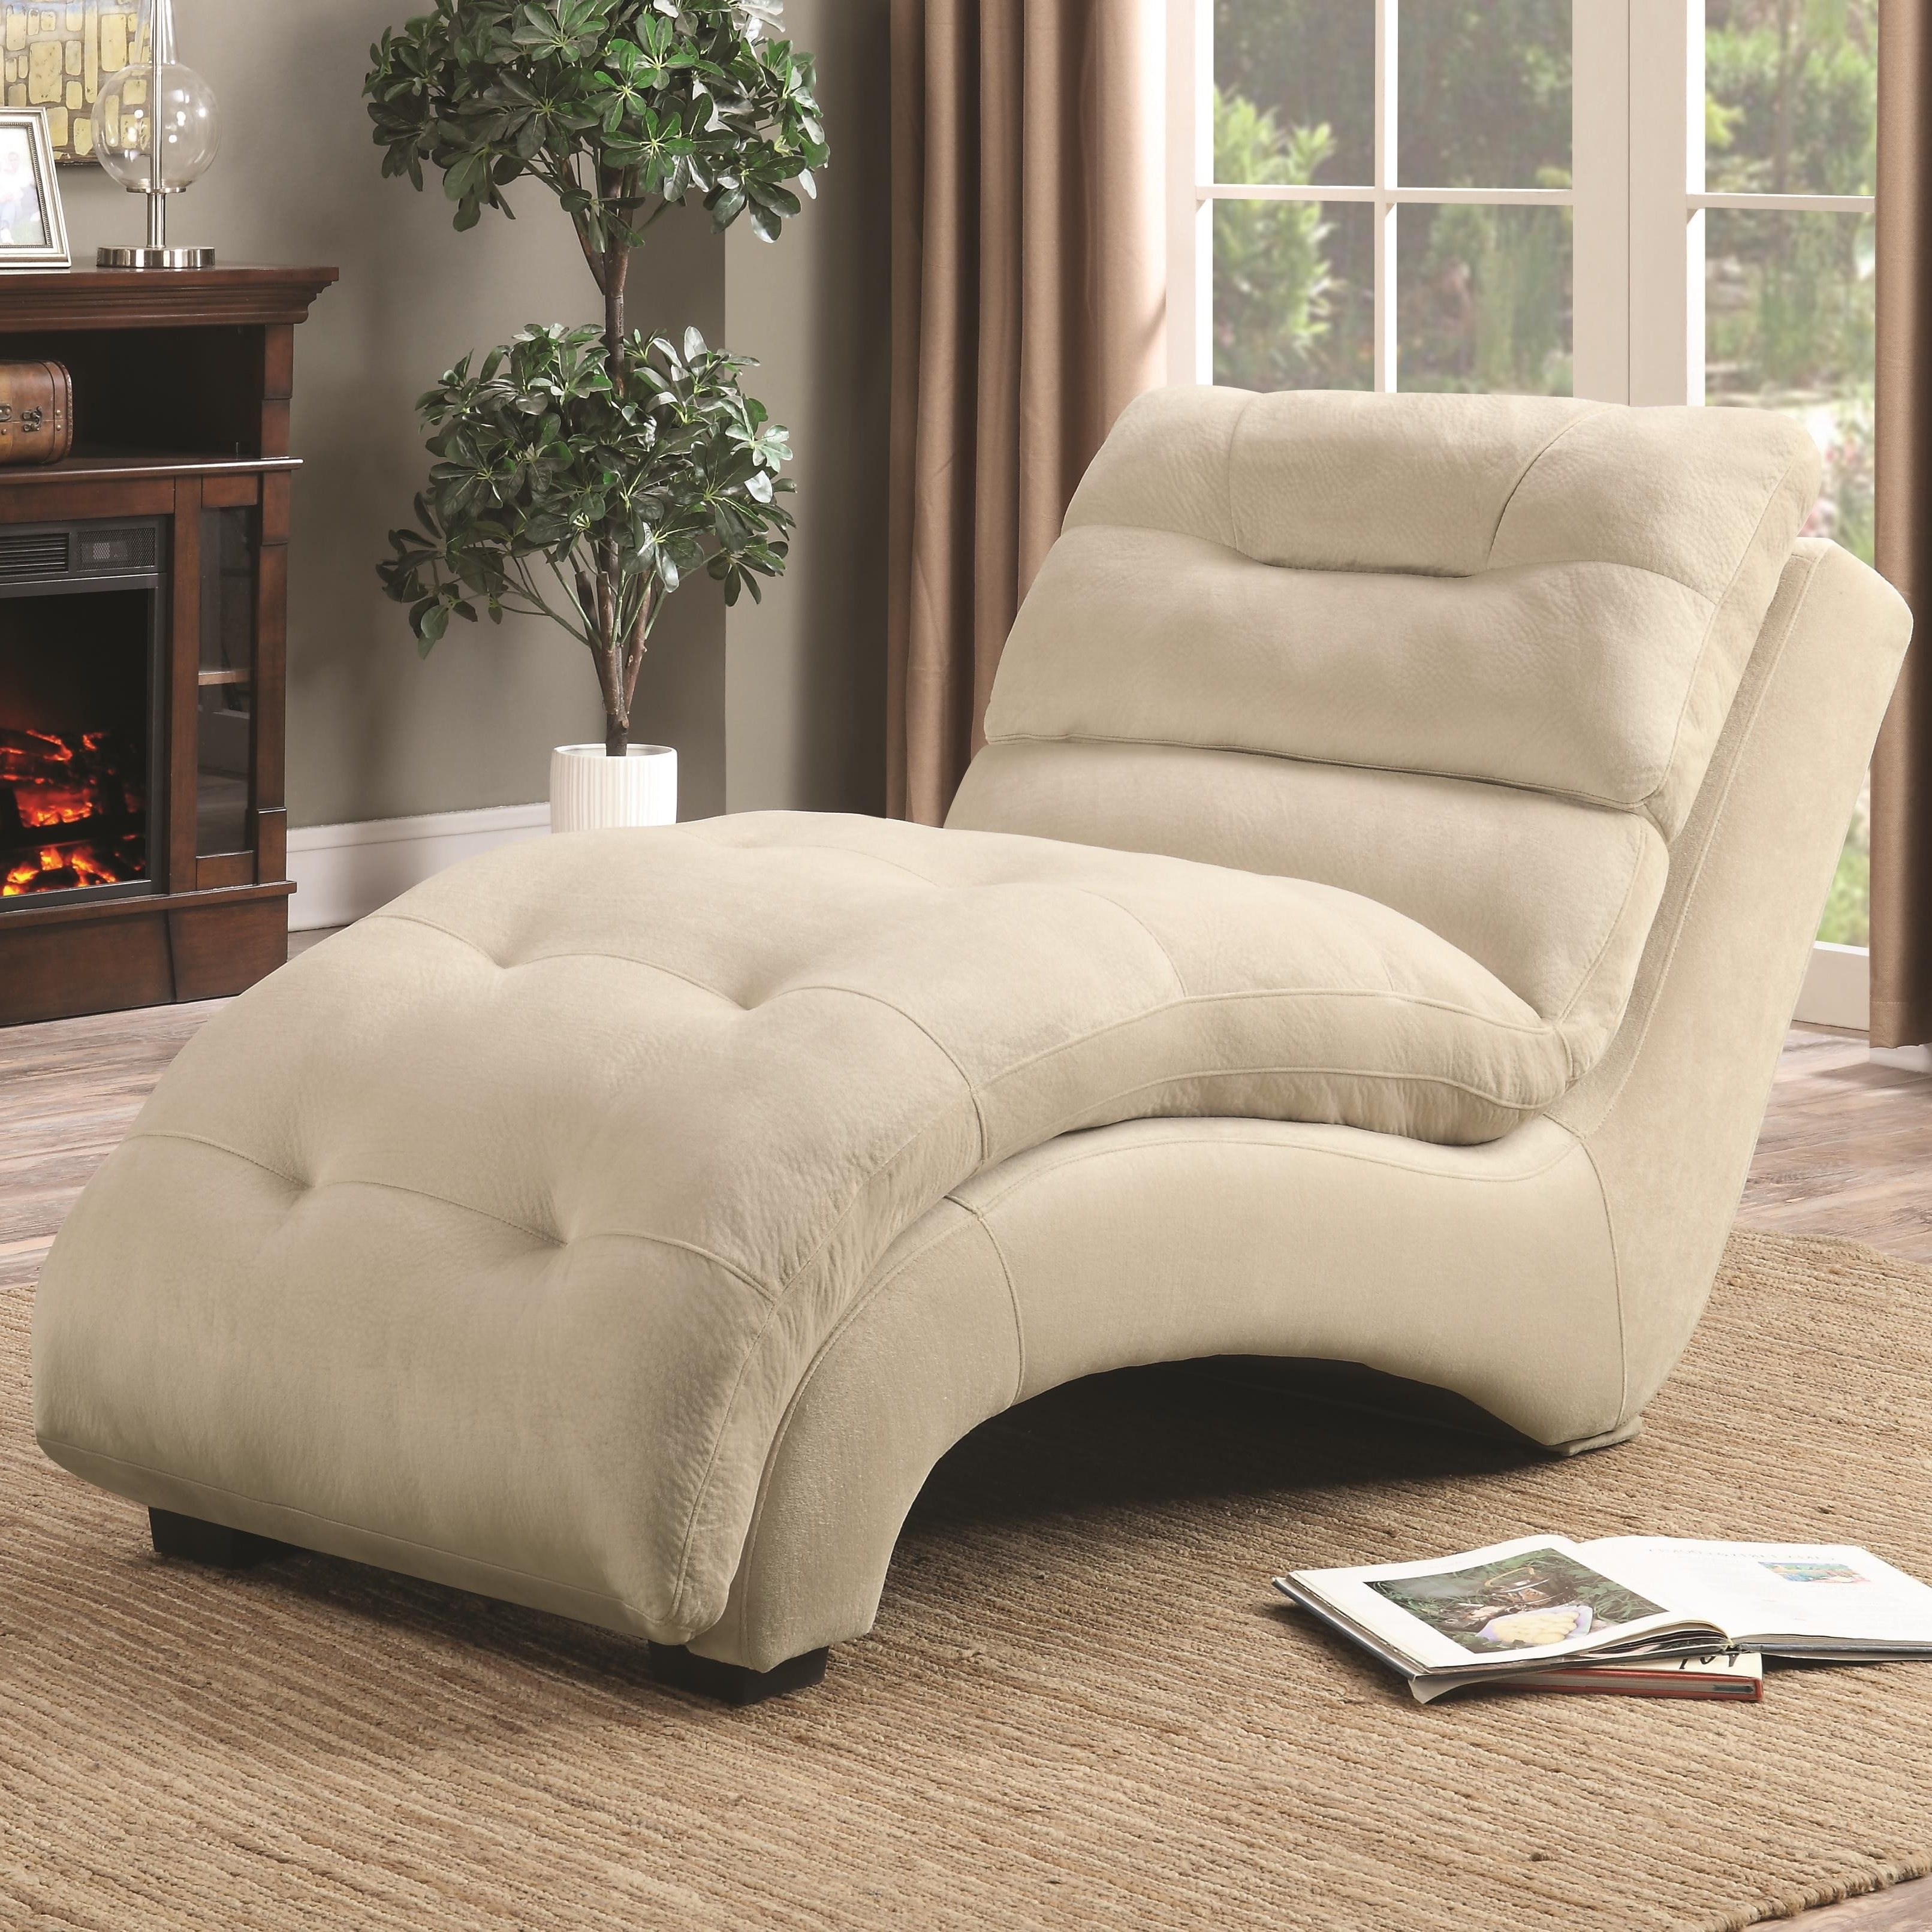 Upholstered Chaises For Newest Coaster 550347 Accent Chaise With Arched Base In Tan Padded Upholstery (View 7 of 15)